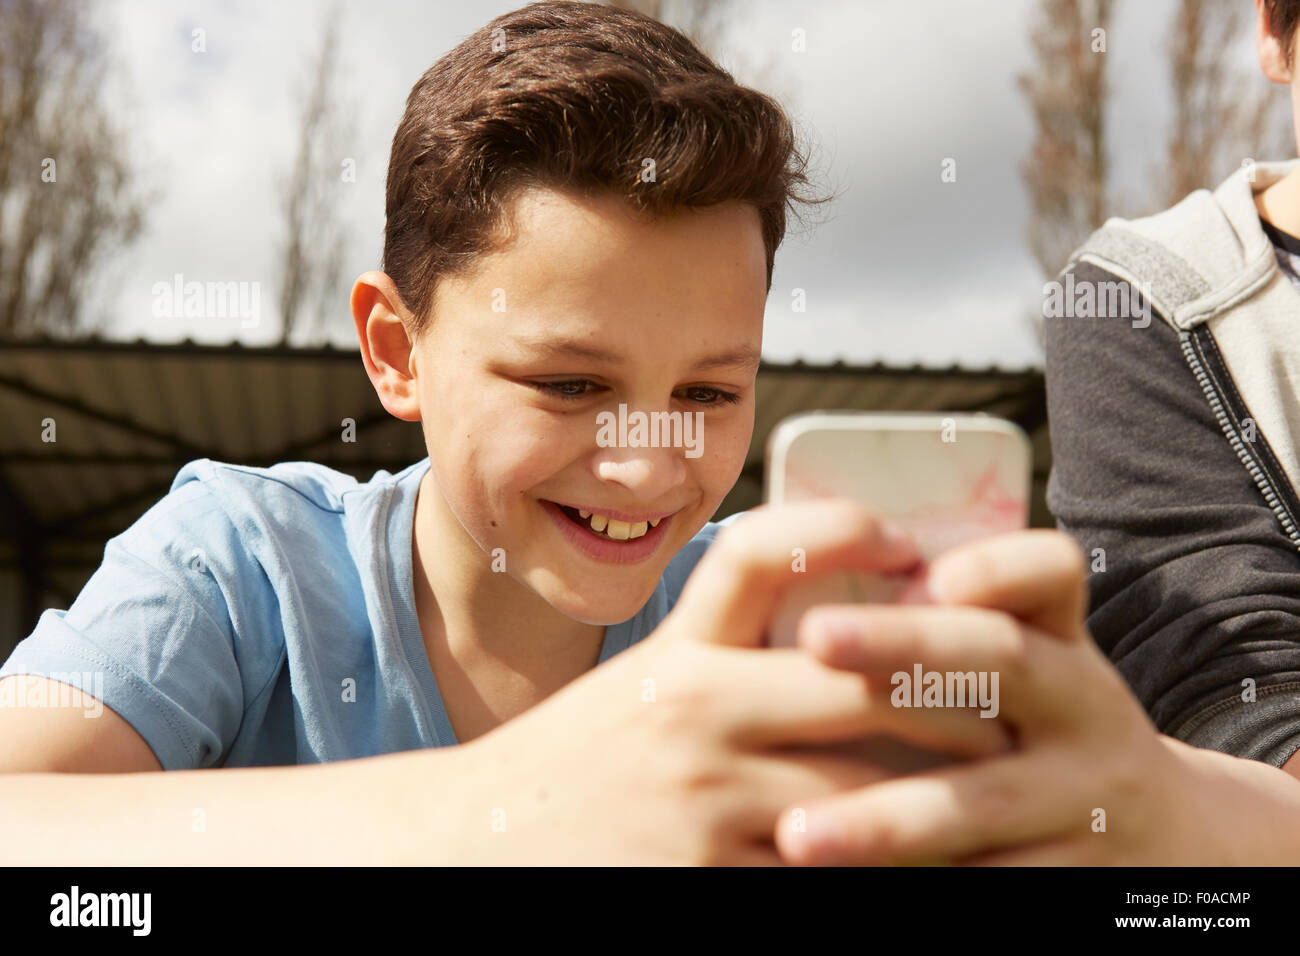 Smiling boy reading smartphone text message - Stock Image